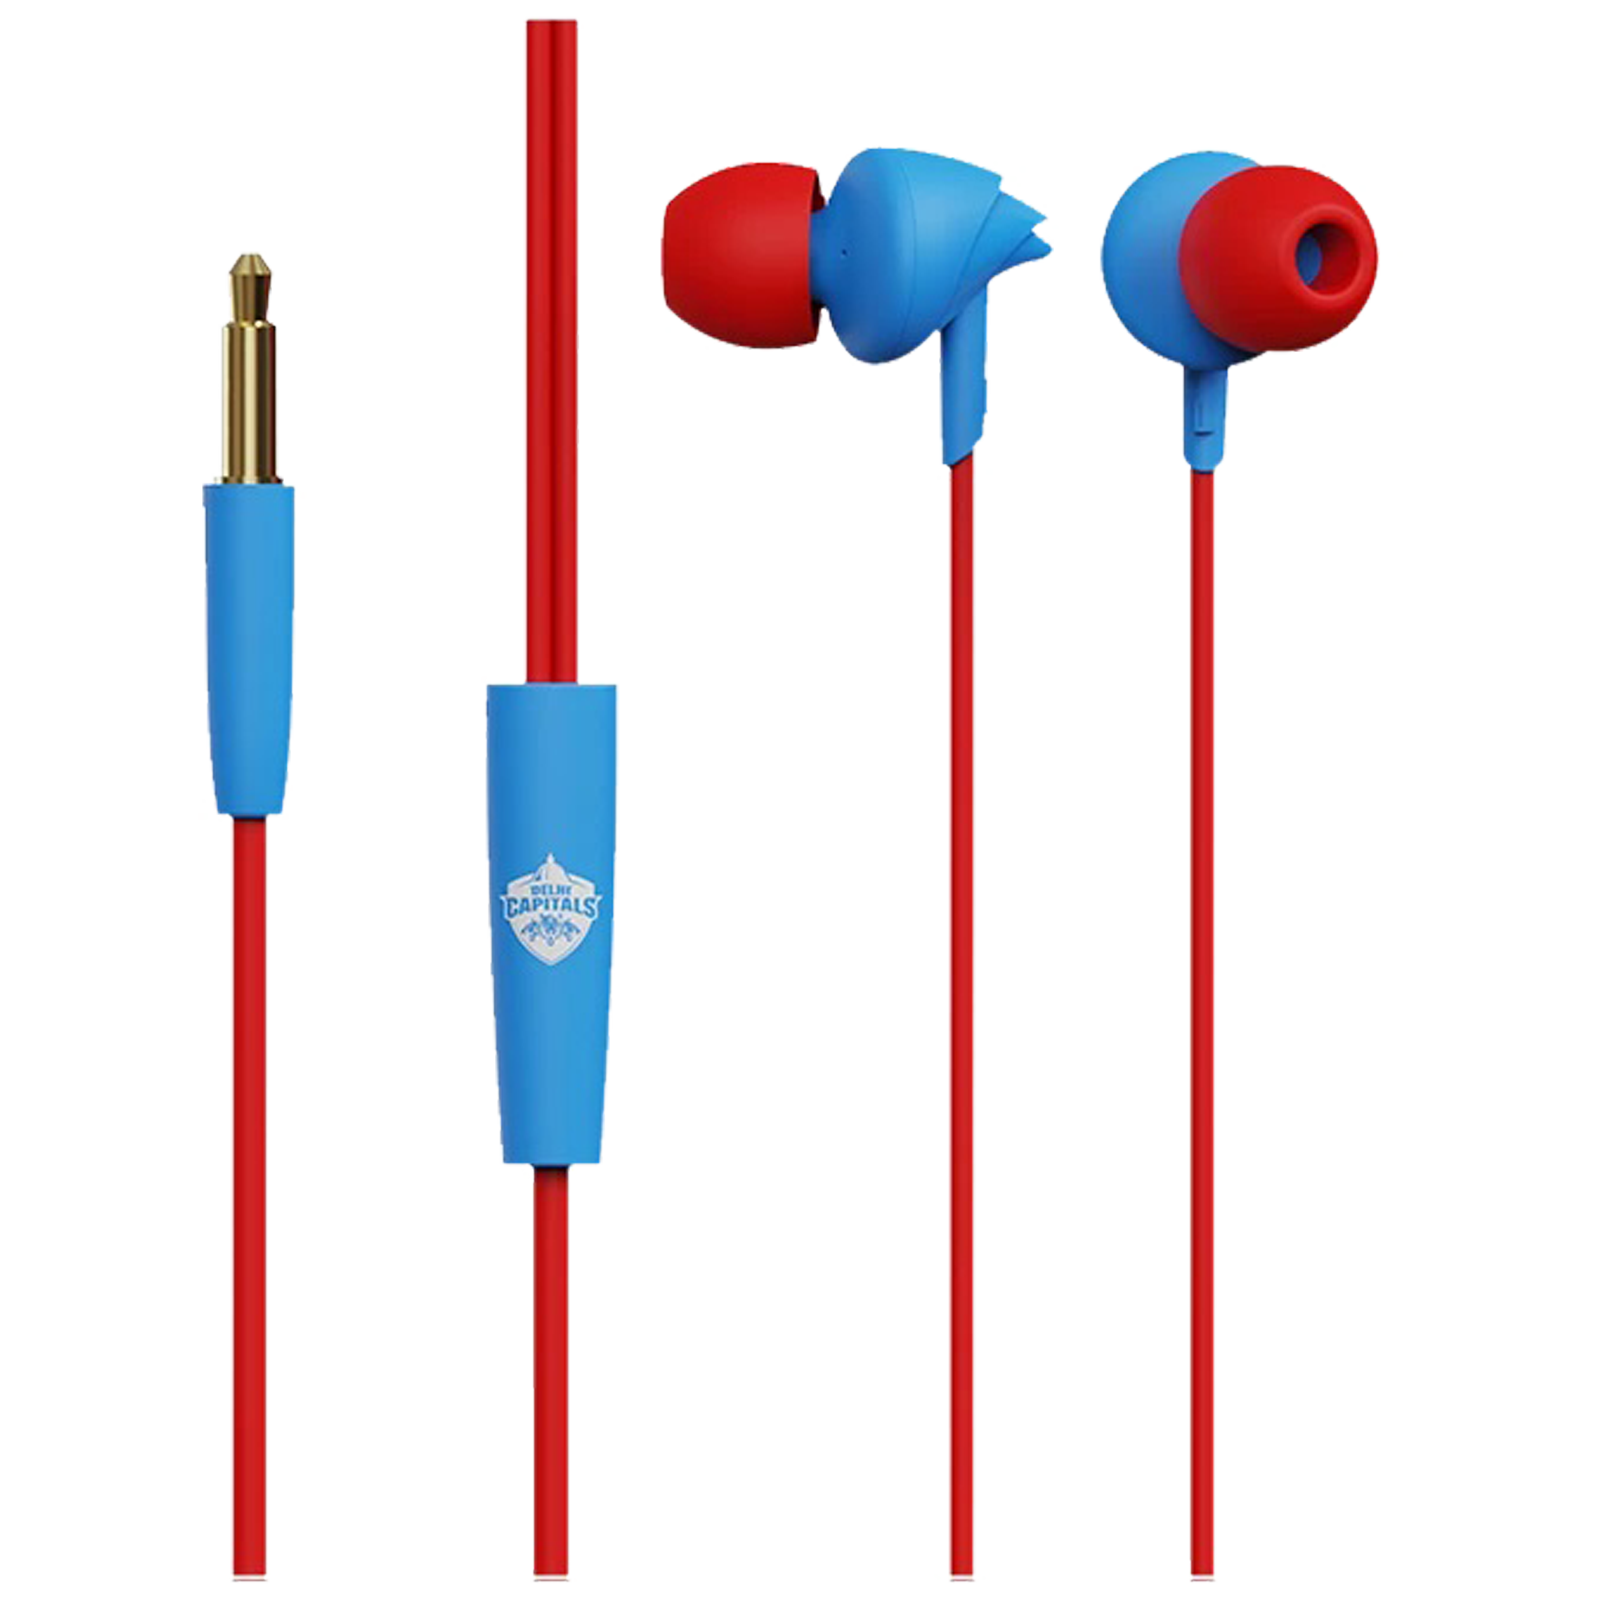 boAt BassHeads 100 Delhi Capitals Edition In-Ear Noise Isolation Wired Earphone with Mic (Single Press Voice Assistant, Blue)_1